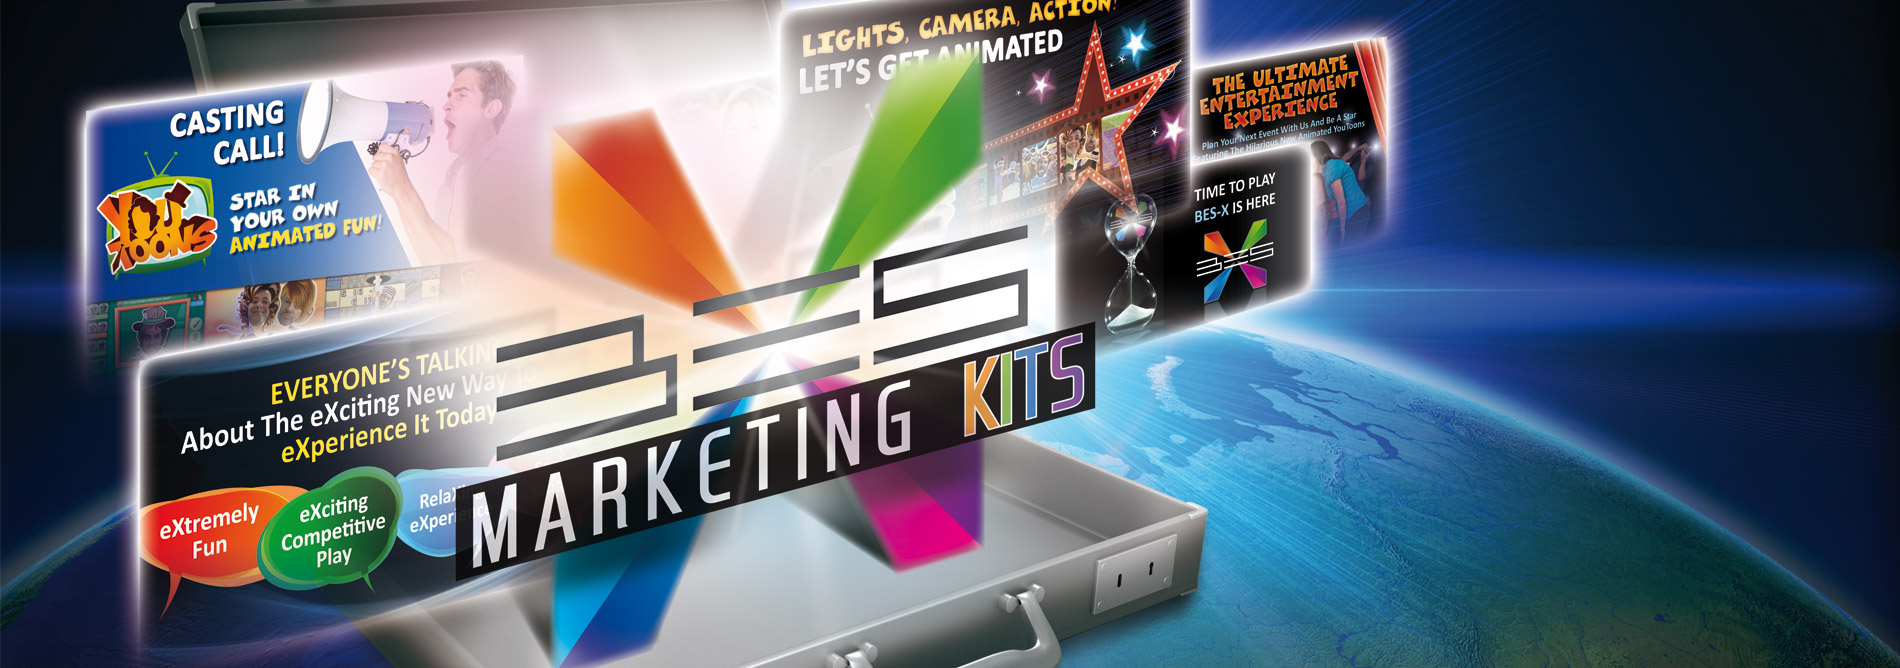 bowling_qubicaamf_score_besx_marketing_kids_overview.jpg